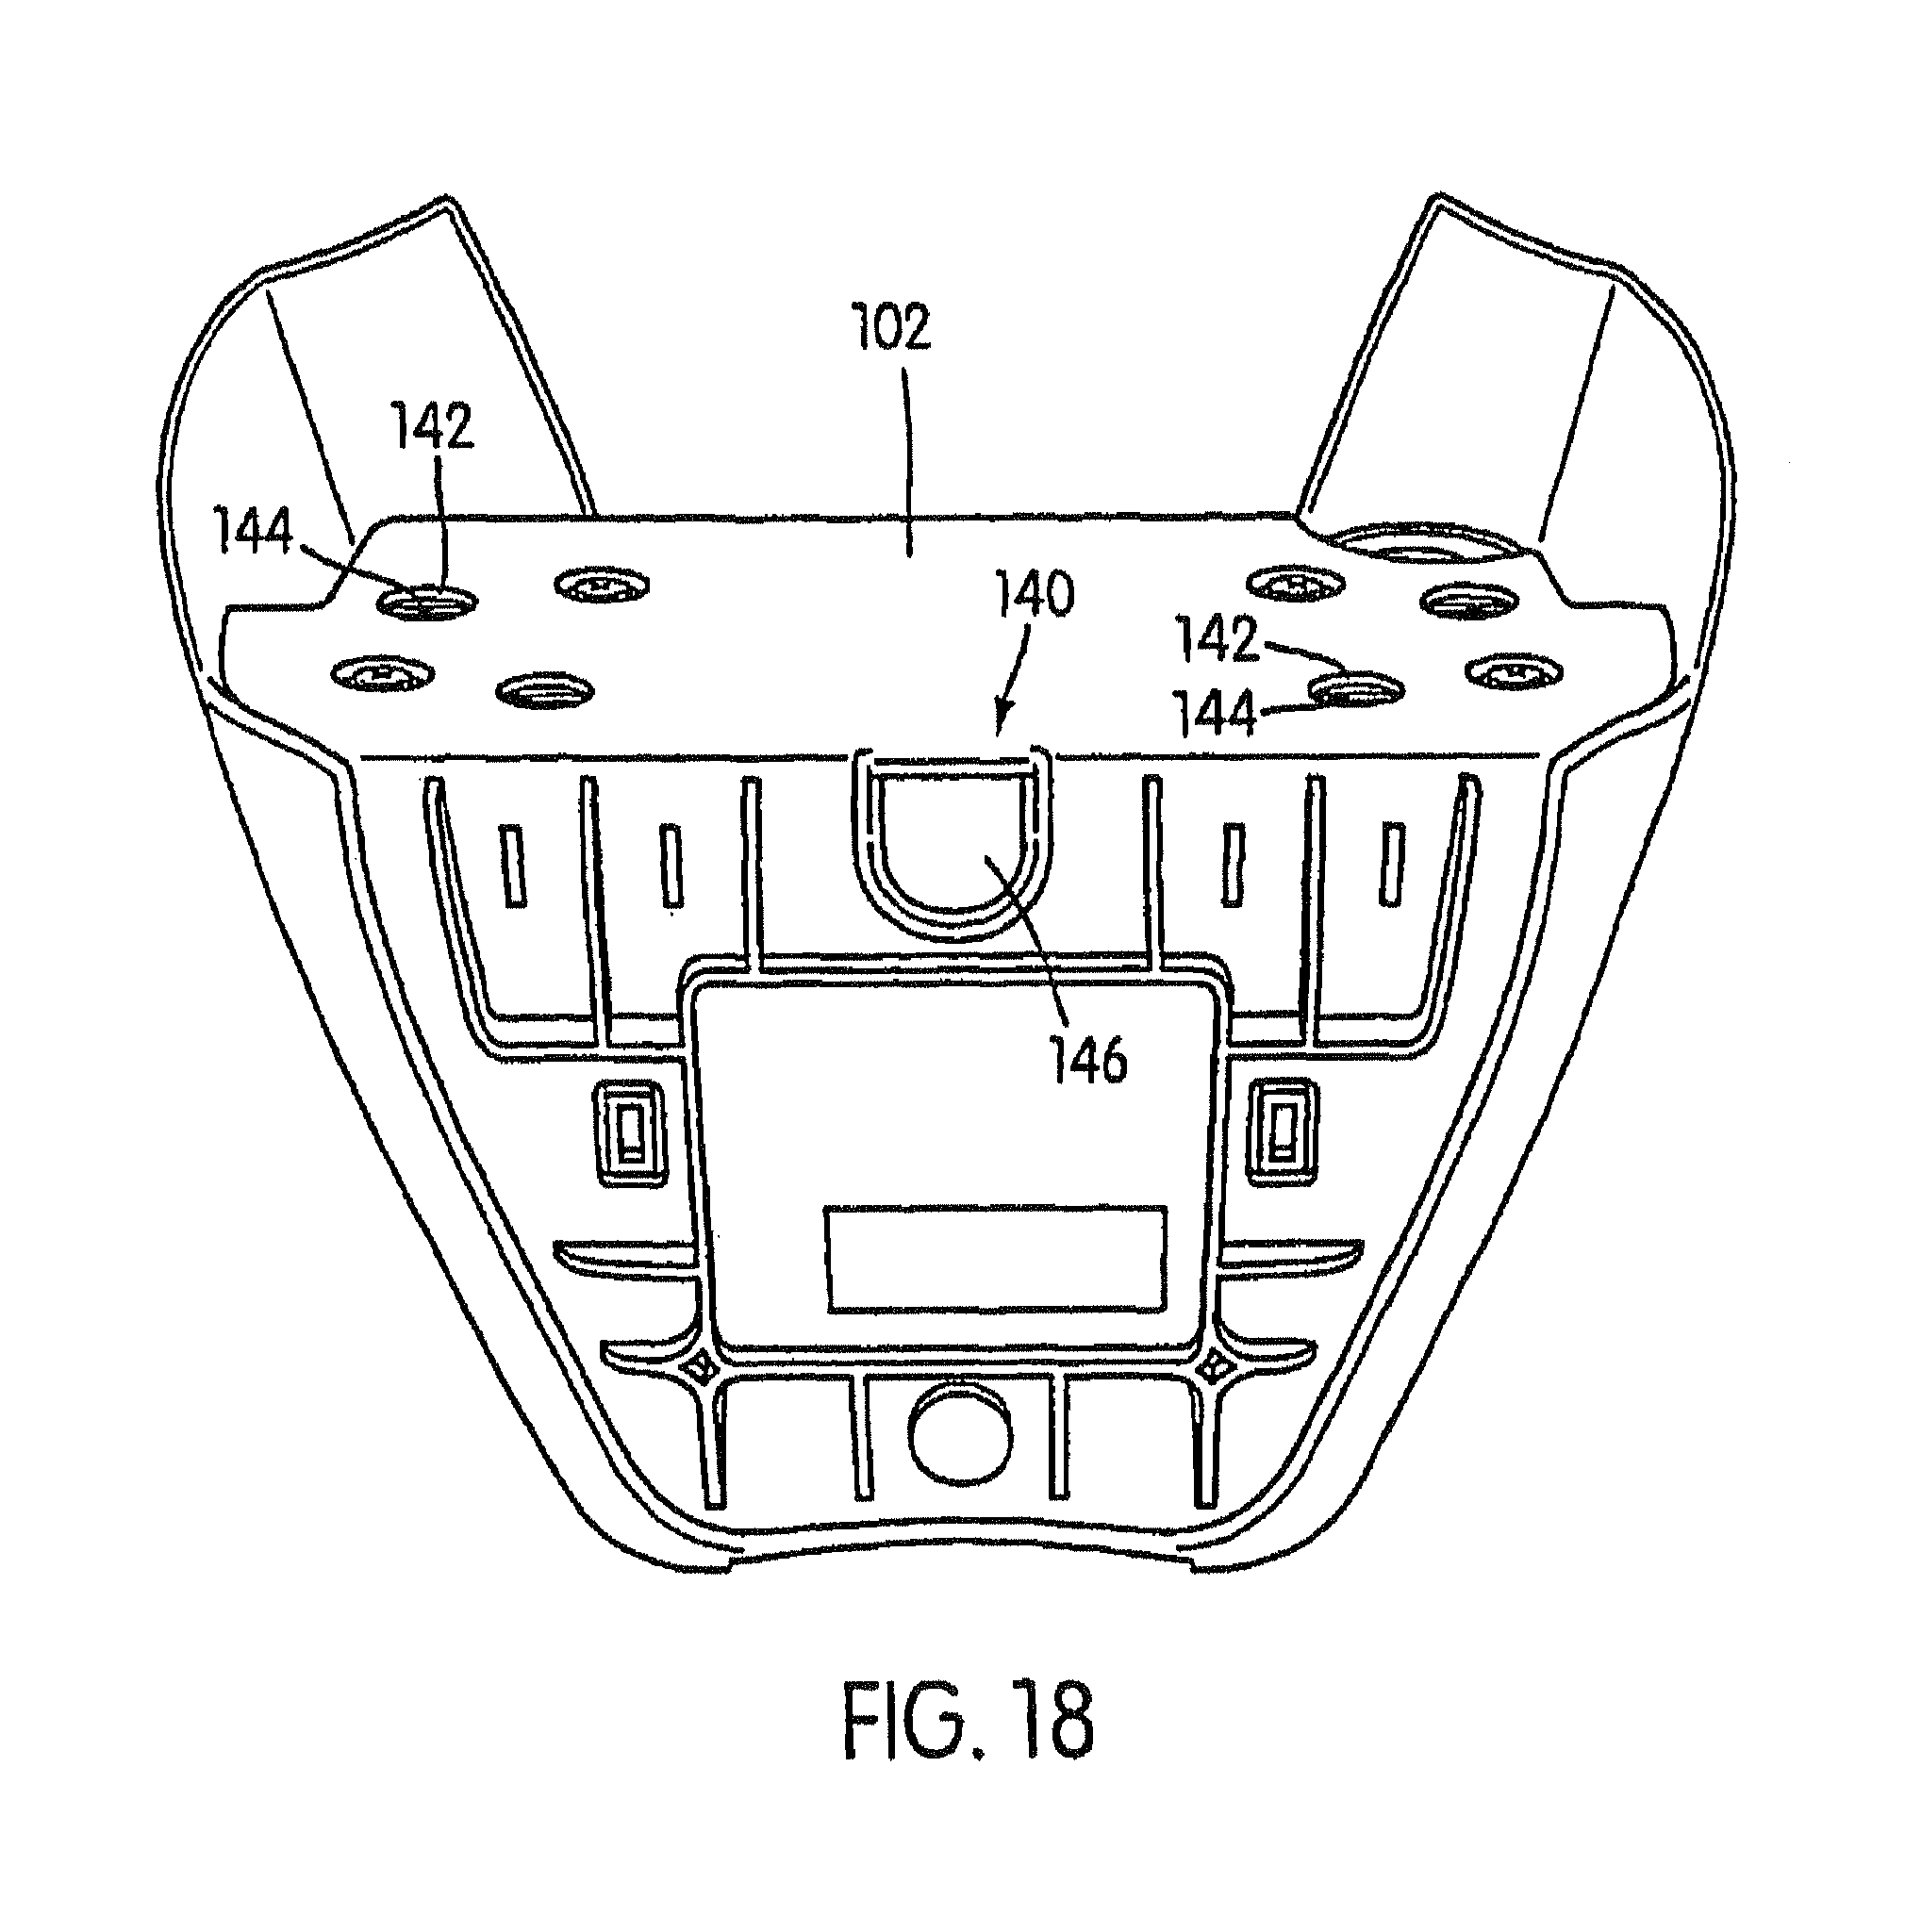 humidifier assembly for a cpap apparatus comprising a humidifier #666666